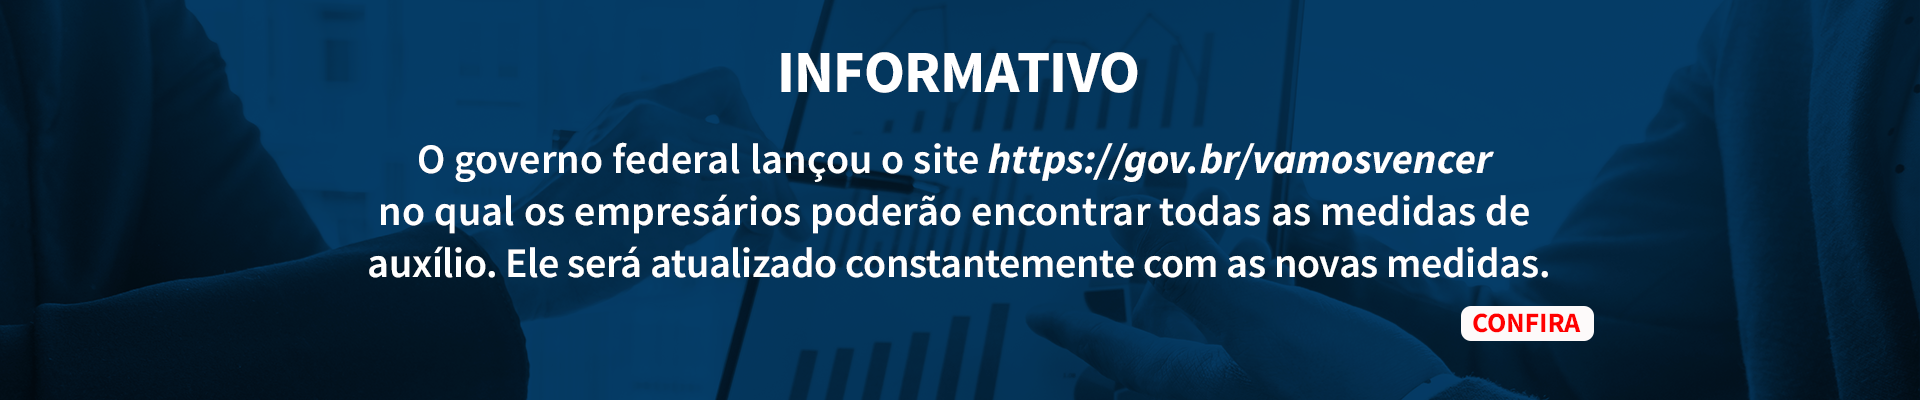 Inf. Governo Federal